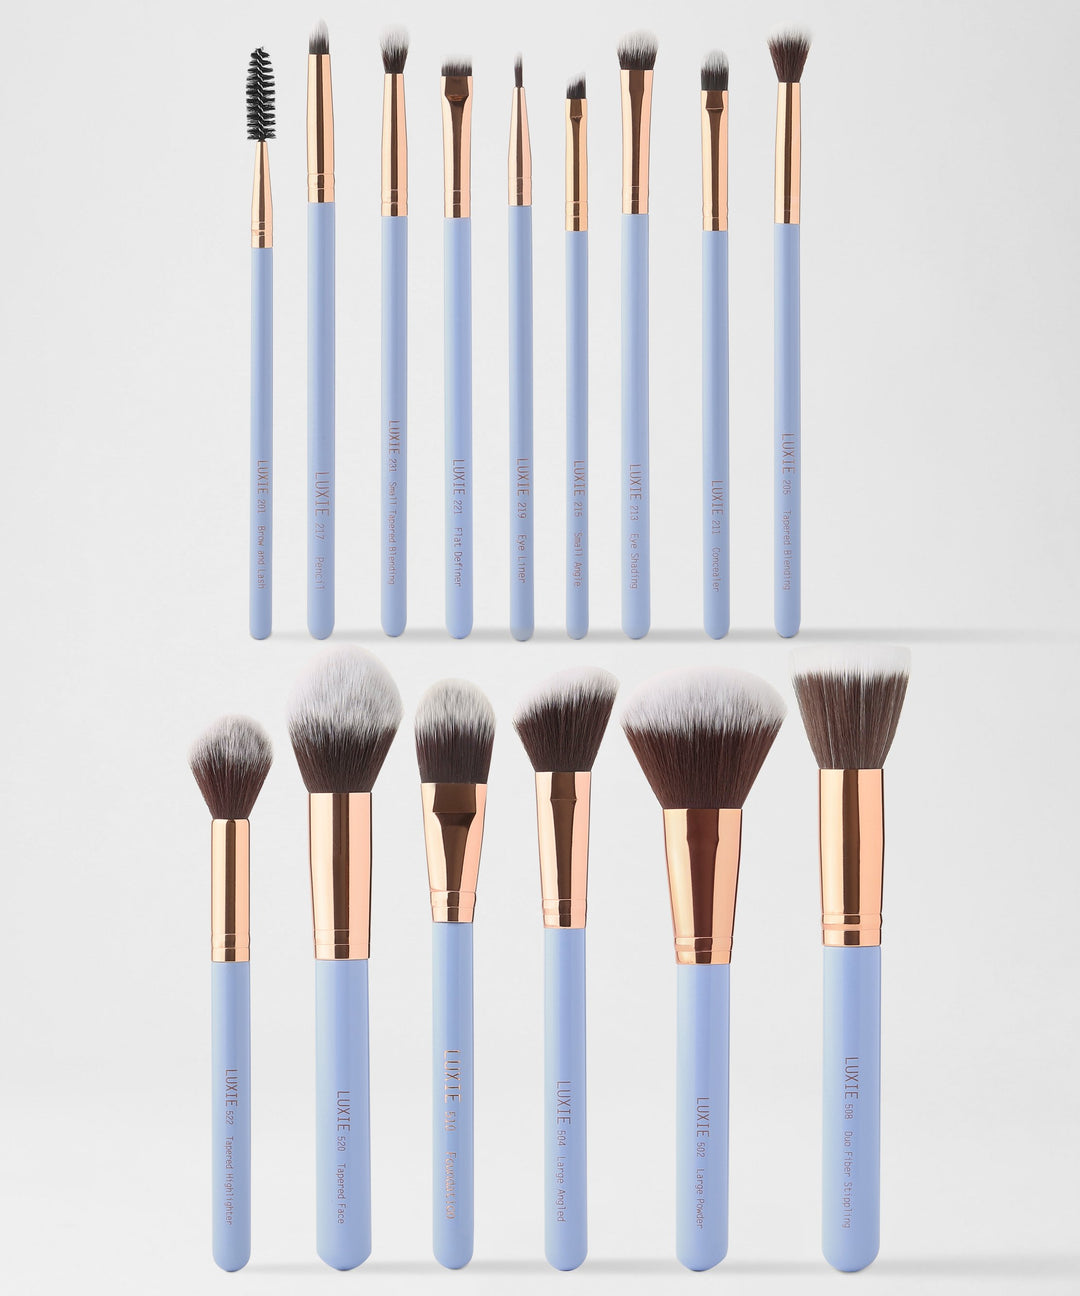 LUXIE Dreamcatcher Brush Set